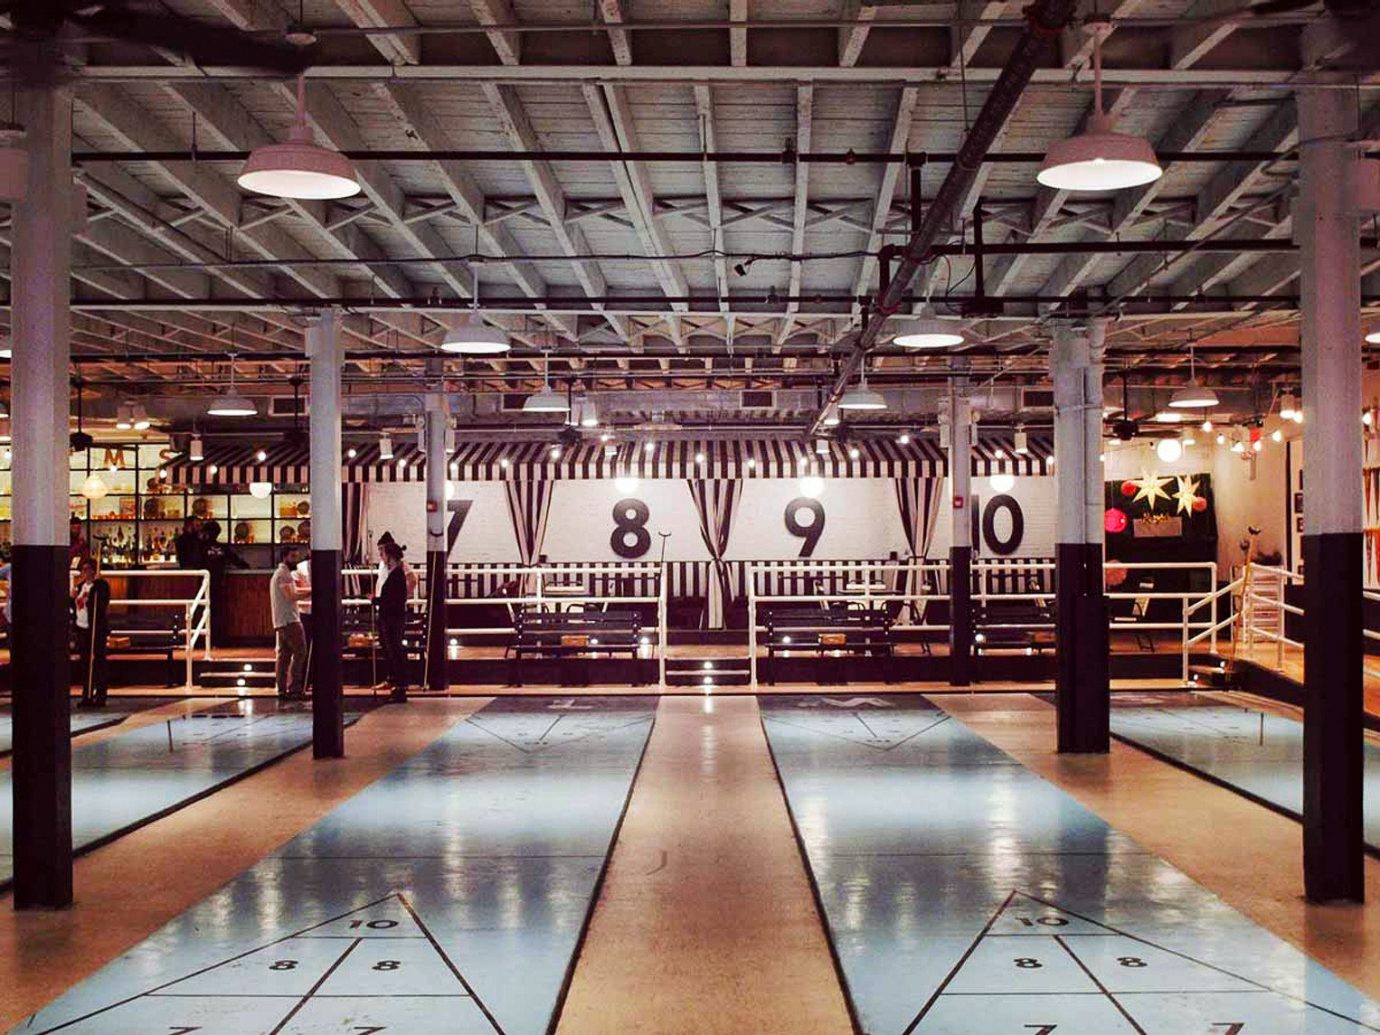 Royal Palms Shuffleboard Club in Brooklyn, NY